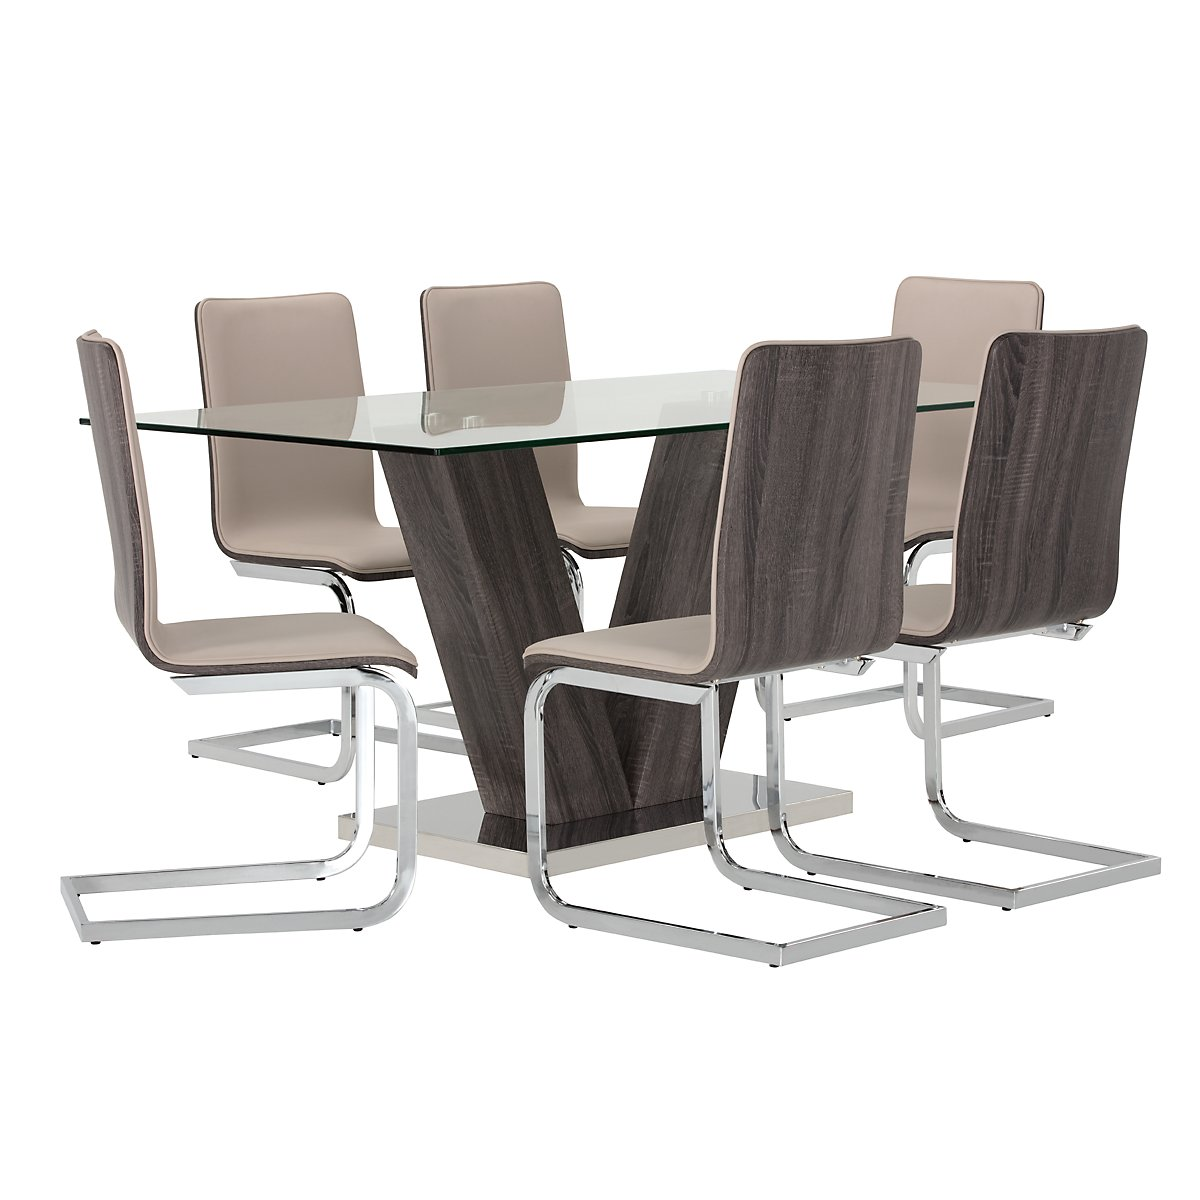 Kendall Dark Tone Glass Table & 4 Upholstered Chairs